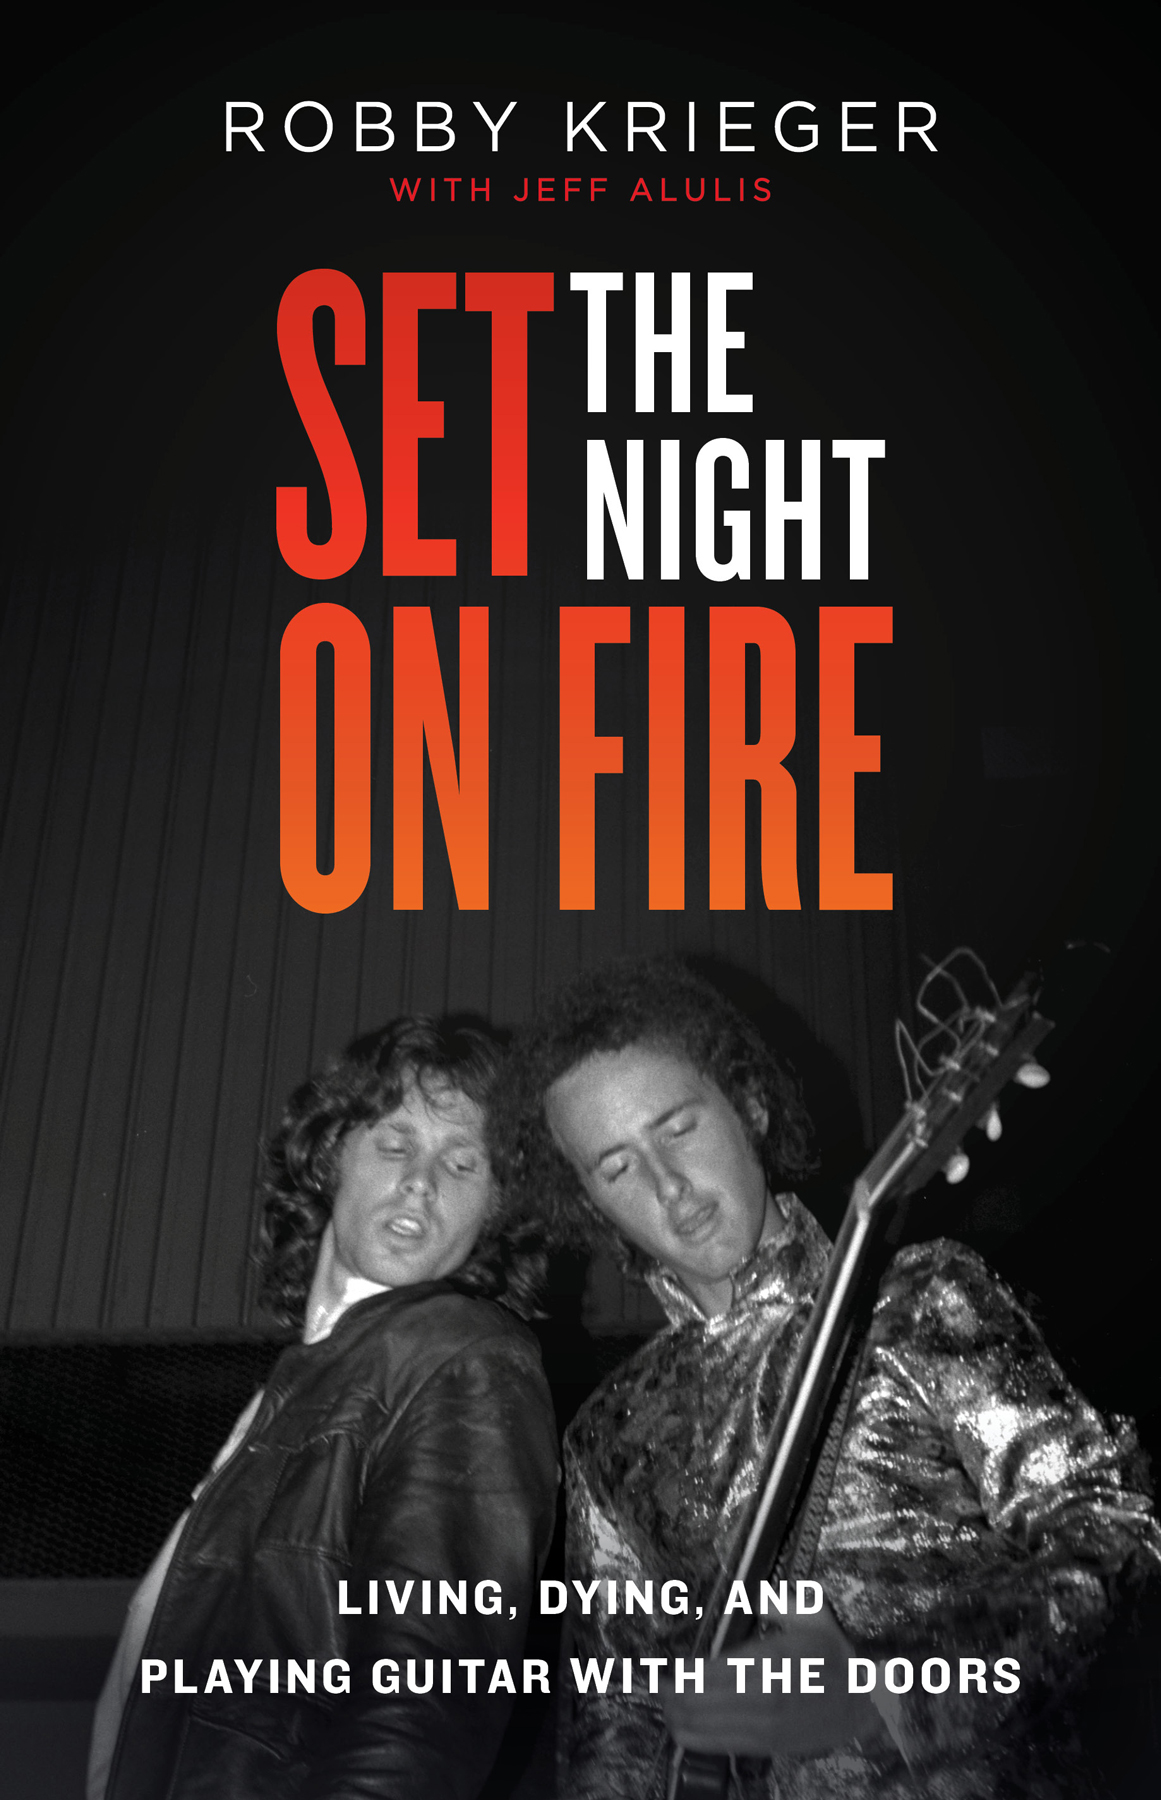 robby krieger set the night on fire